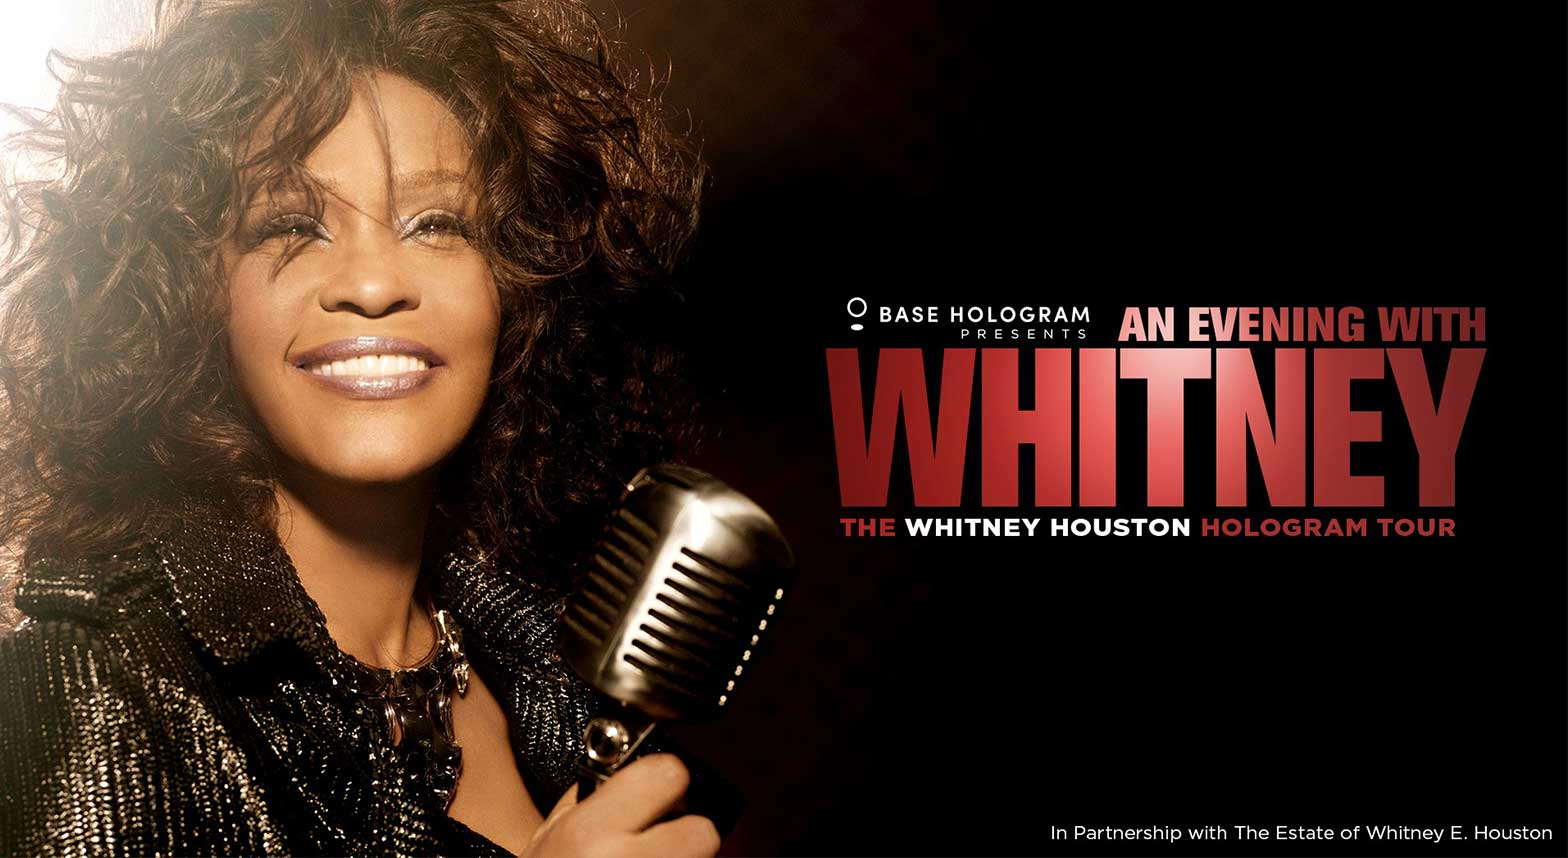 whitney-houston-hologram-arenasV1.jpg